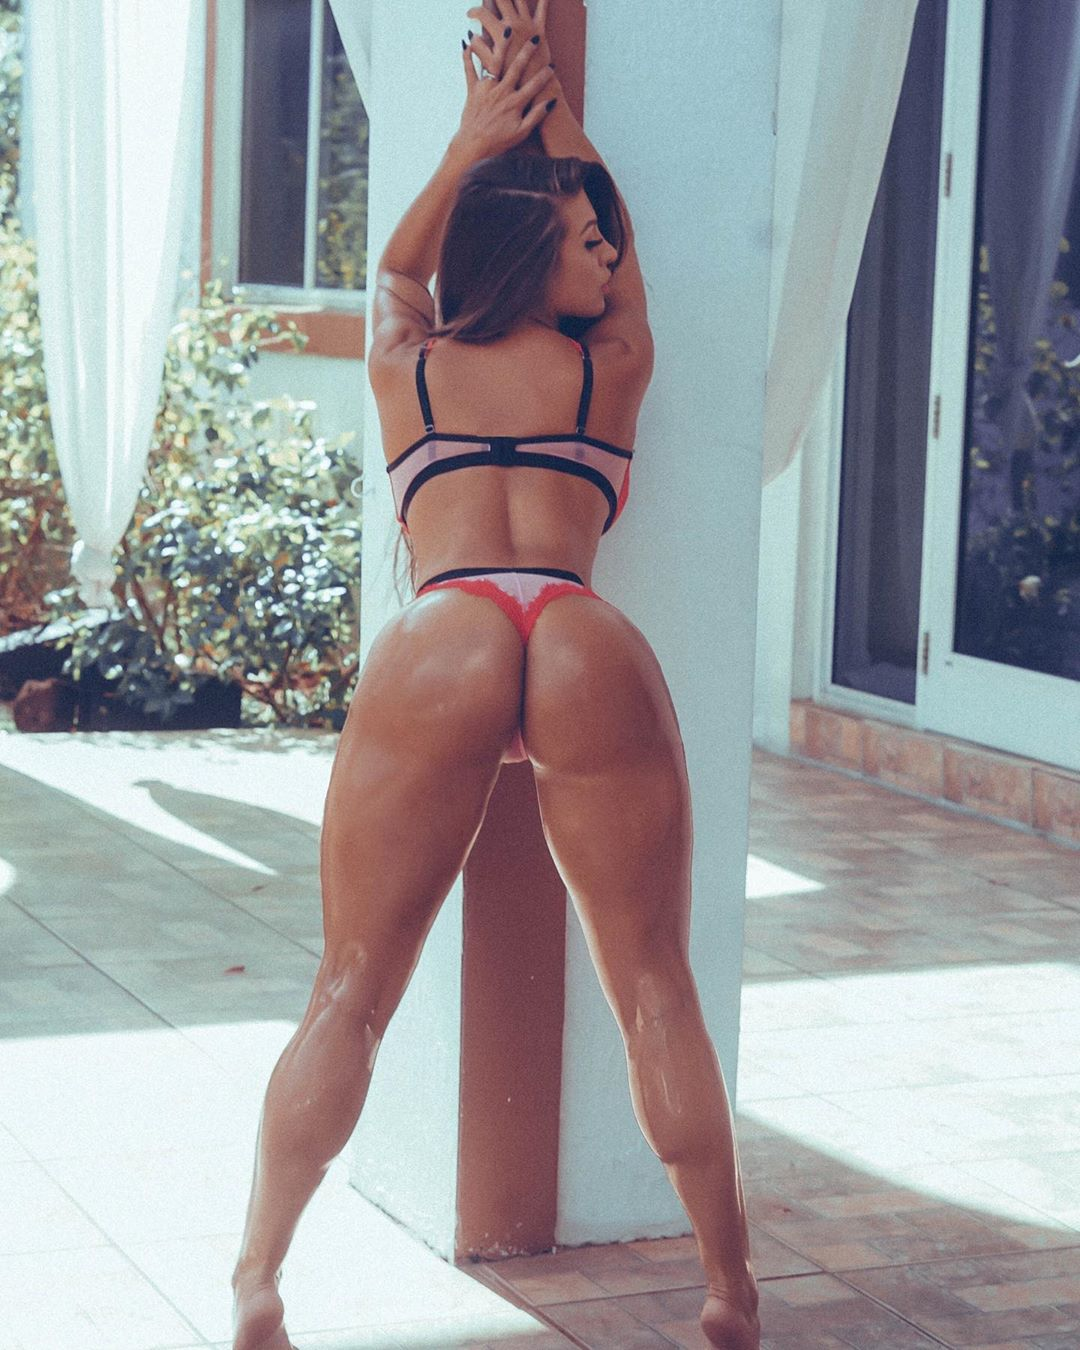 Francia James, Francety, Onlyfans 0057